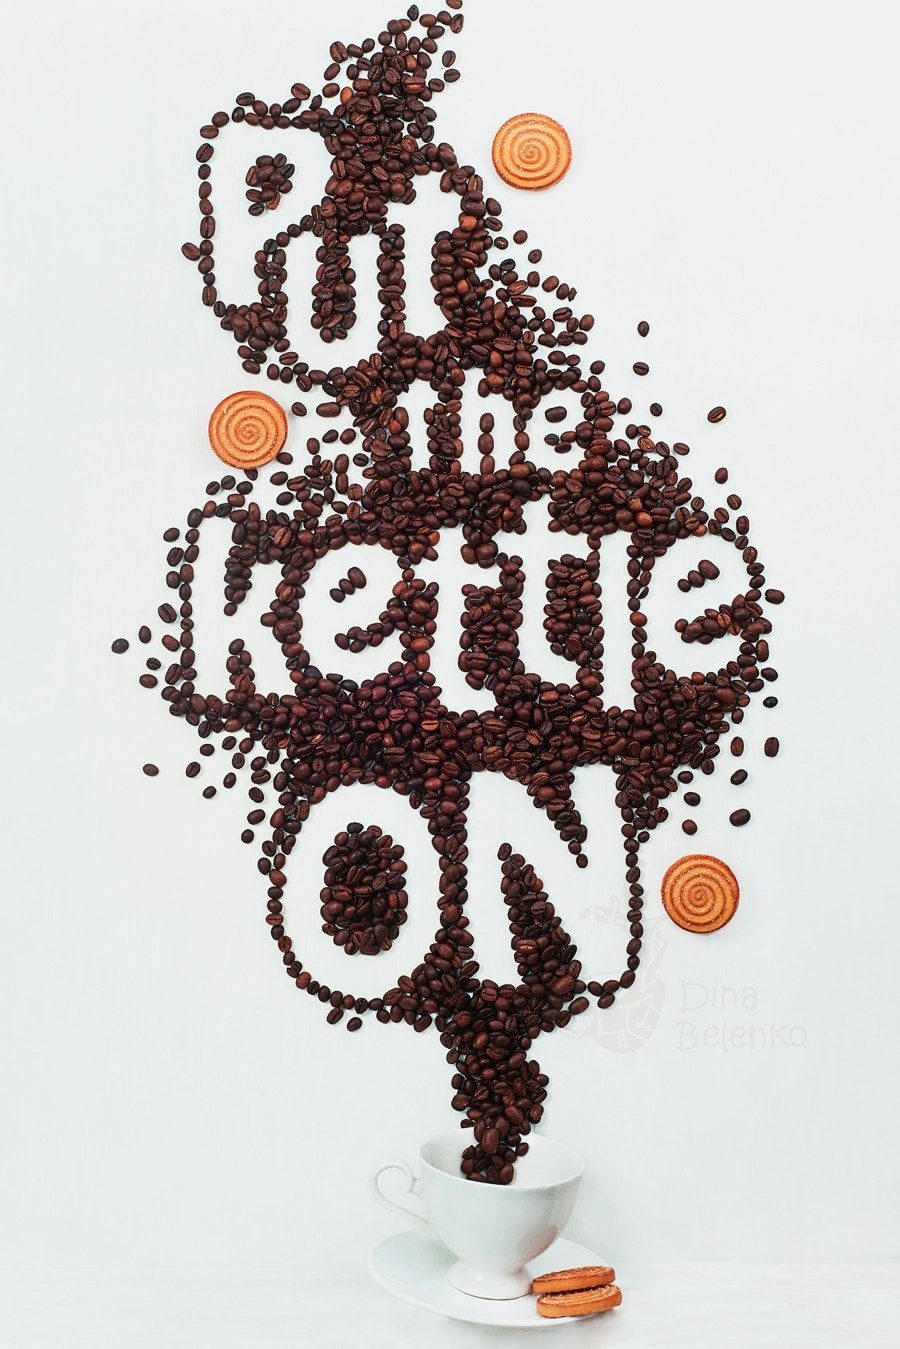 Put the kettle on learn how to get started in food typography in